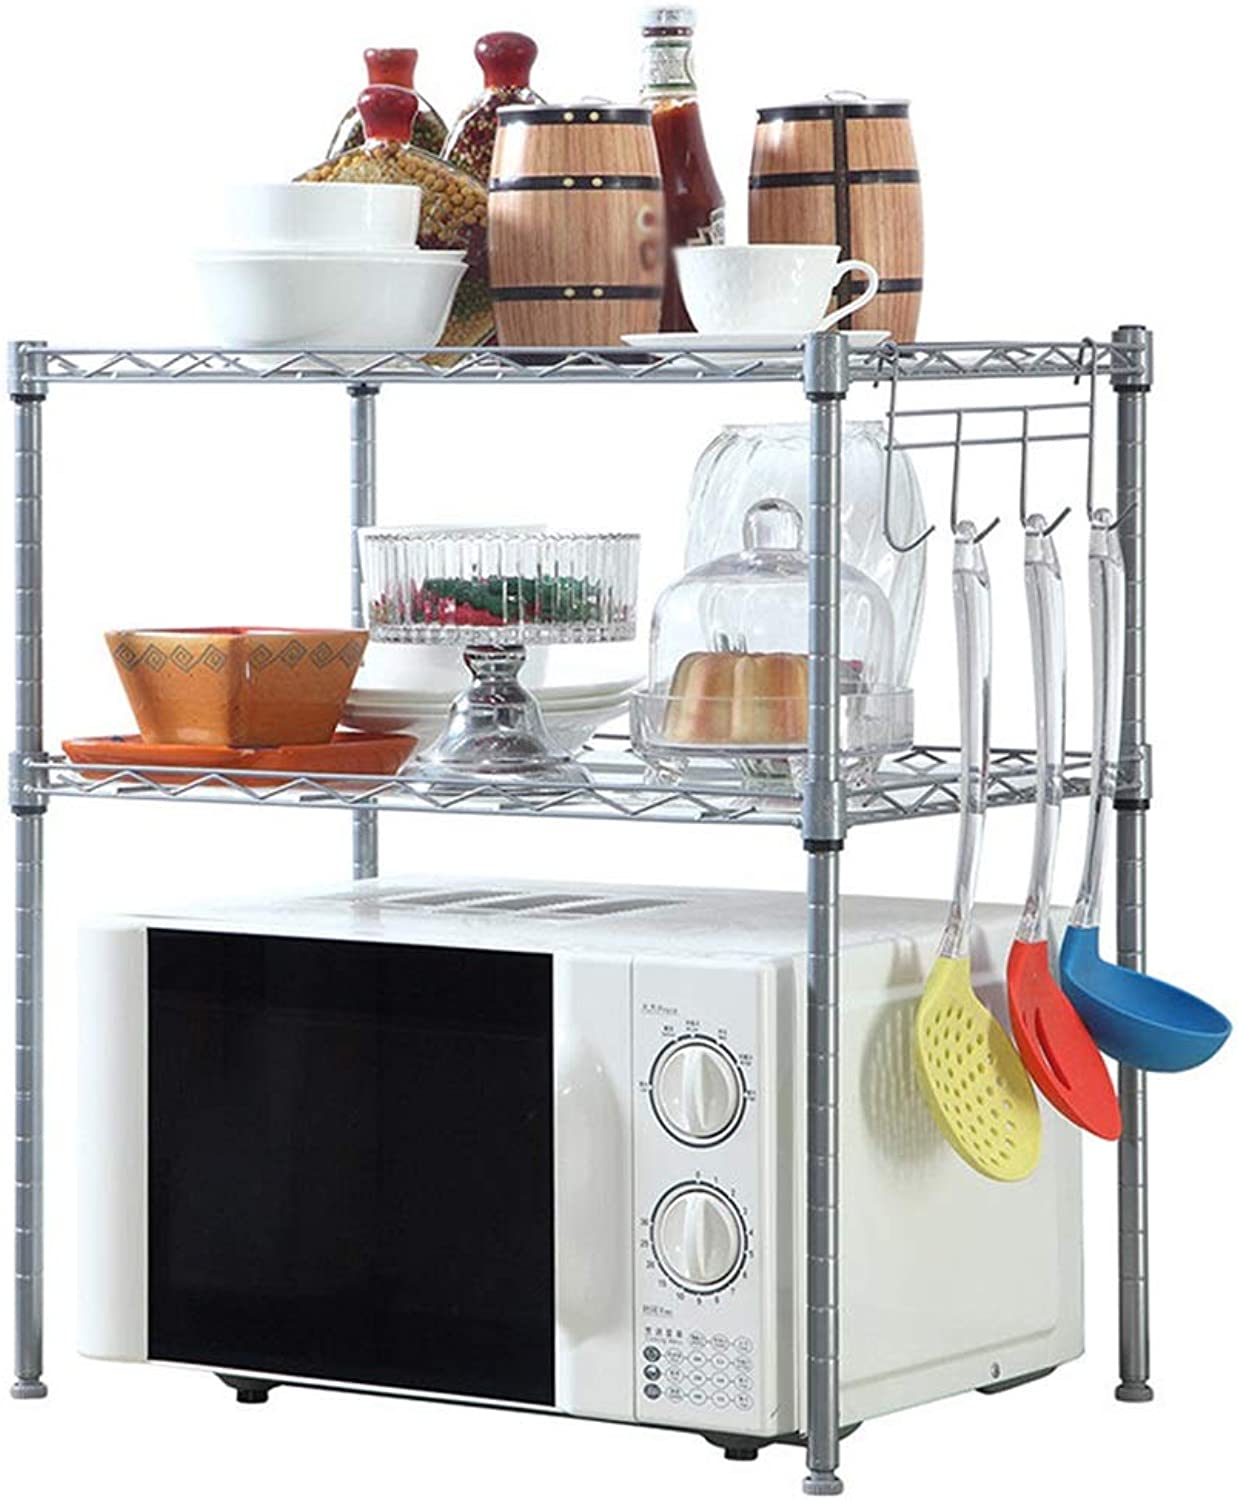 Kitchen Shelf Microwave Shelf Small Size Rust-Proof Carbon Steel + Pp Plastic 3 Layer Floor Storage Shelf 21.6  13.7  22.8 Inches